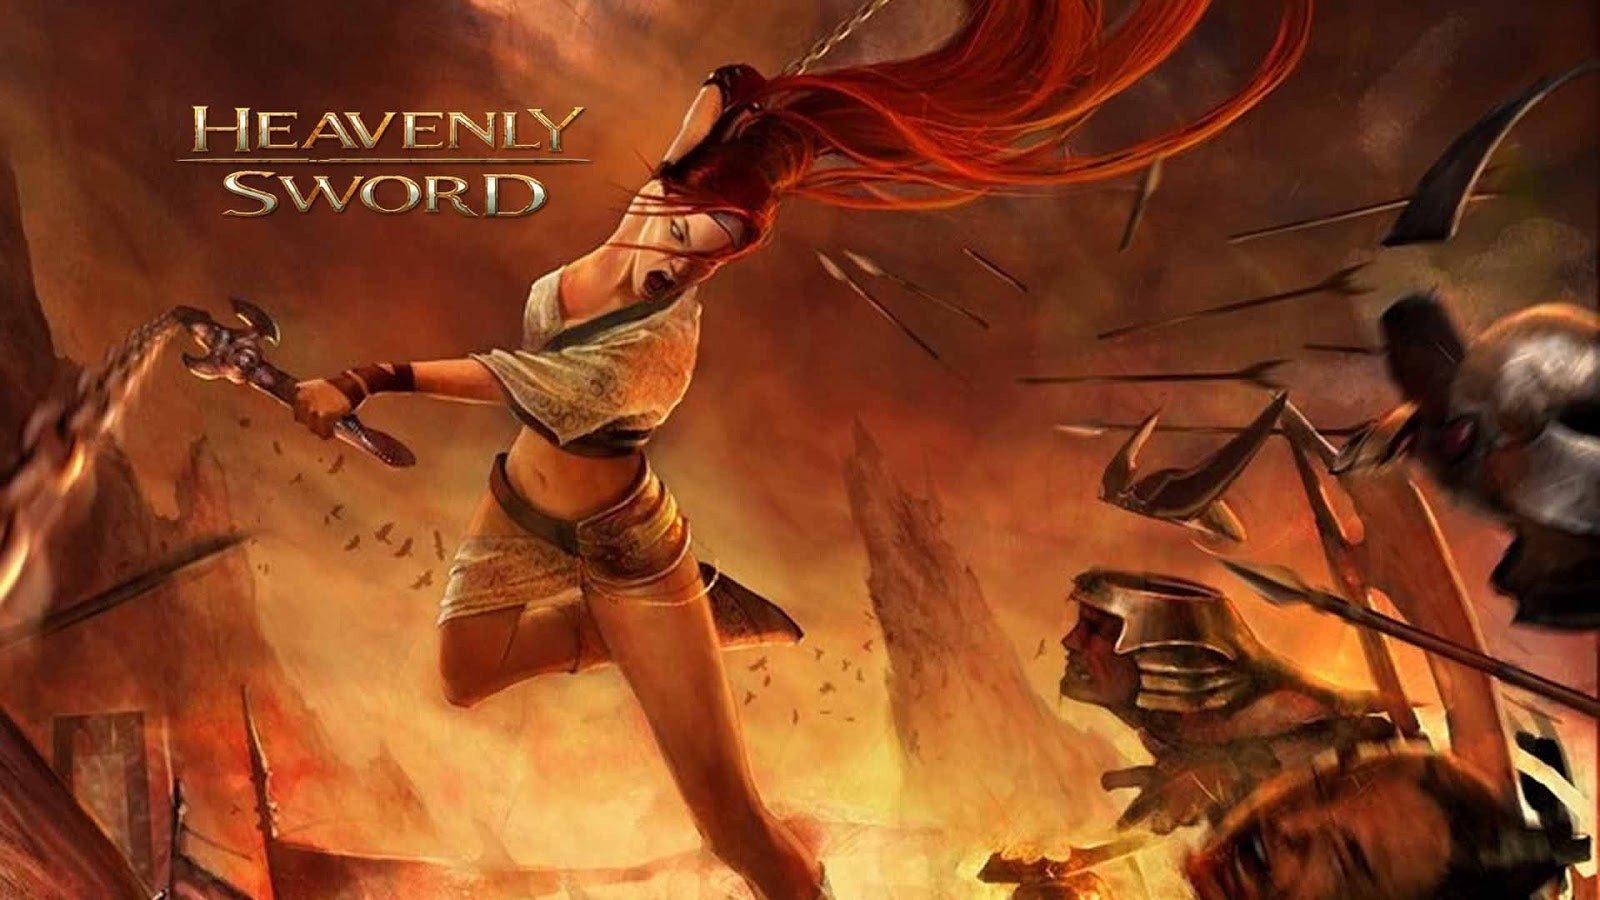 W A L L P A P E R2014 Heavenly Sword Hd Wallpapers